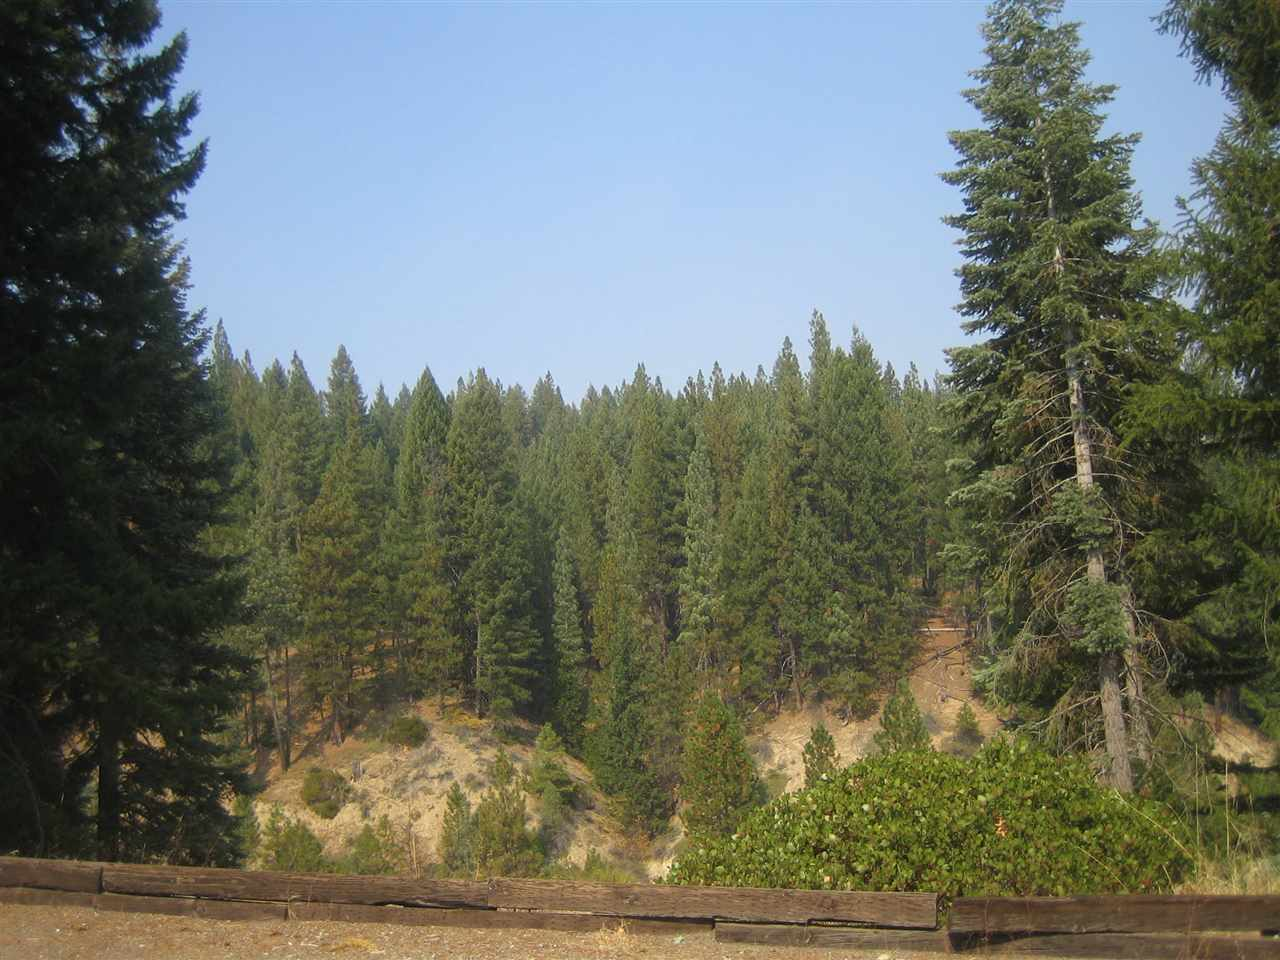 Acreage for Active at 500 Poplar Valley Road 500 Poplar Valley Road Blairsden, California 96103 United States